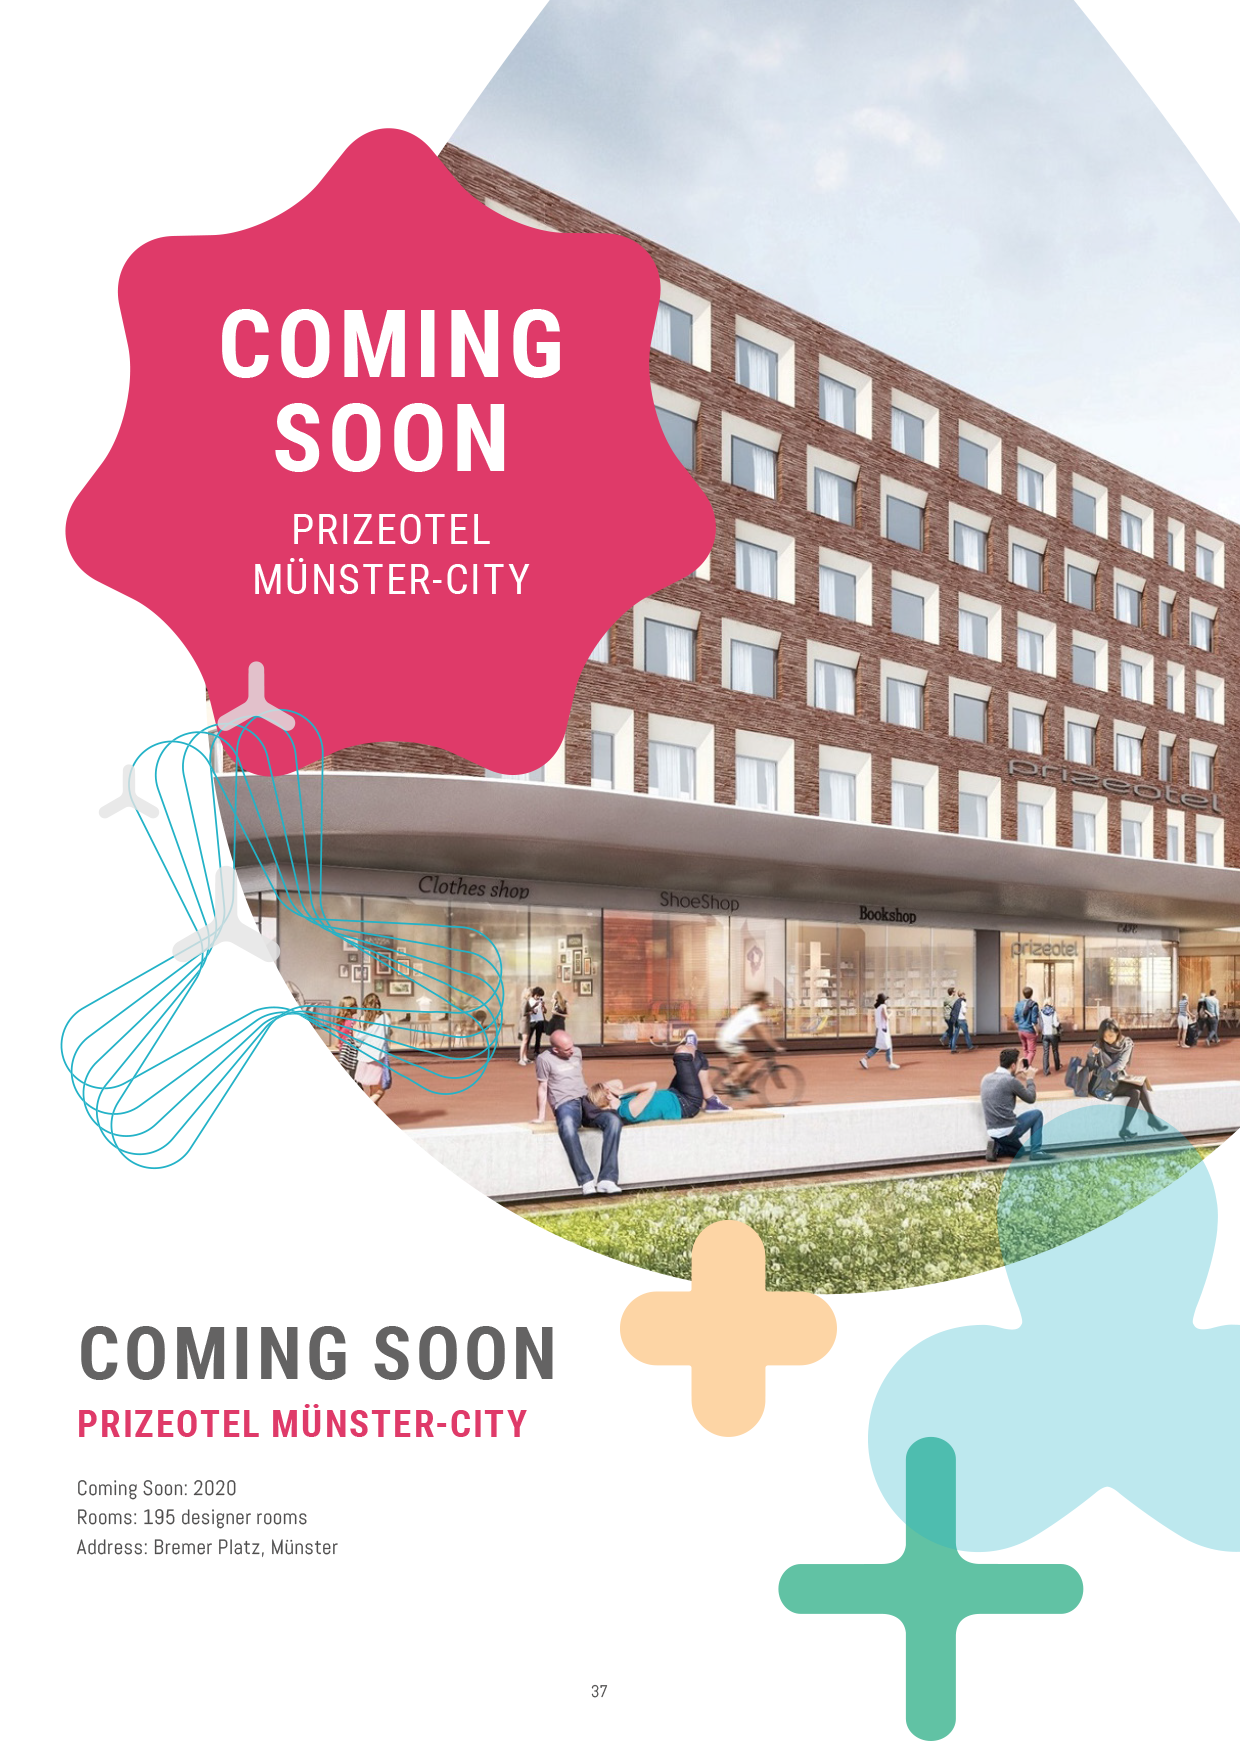 Coming Soon - prizeotel Münster-City